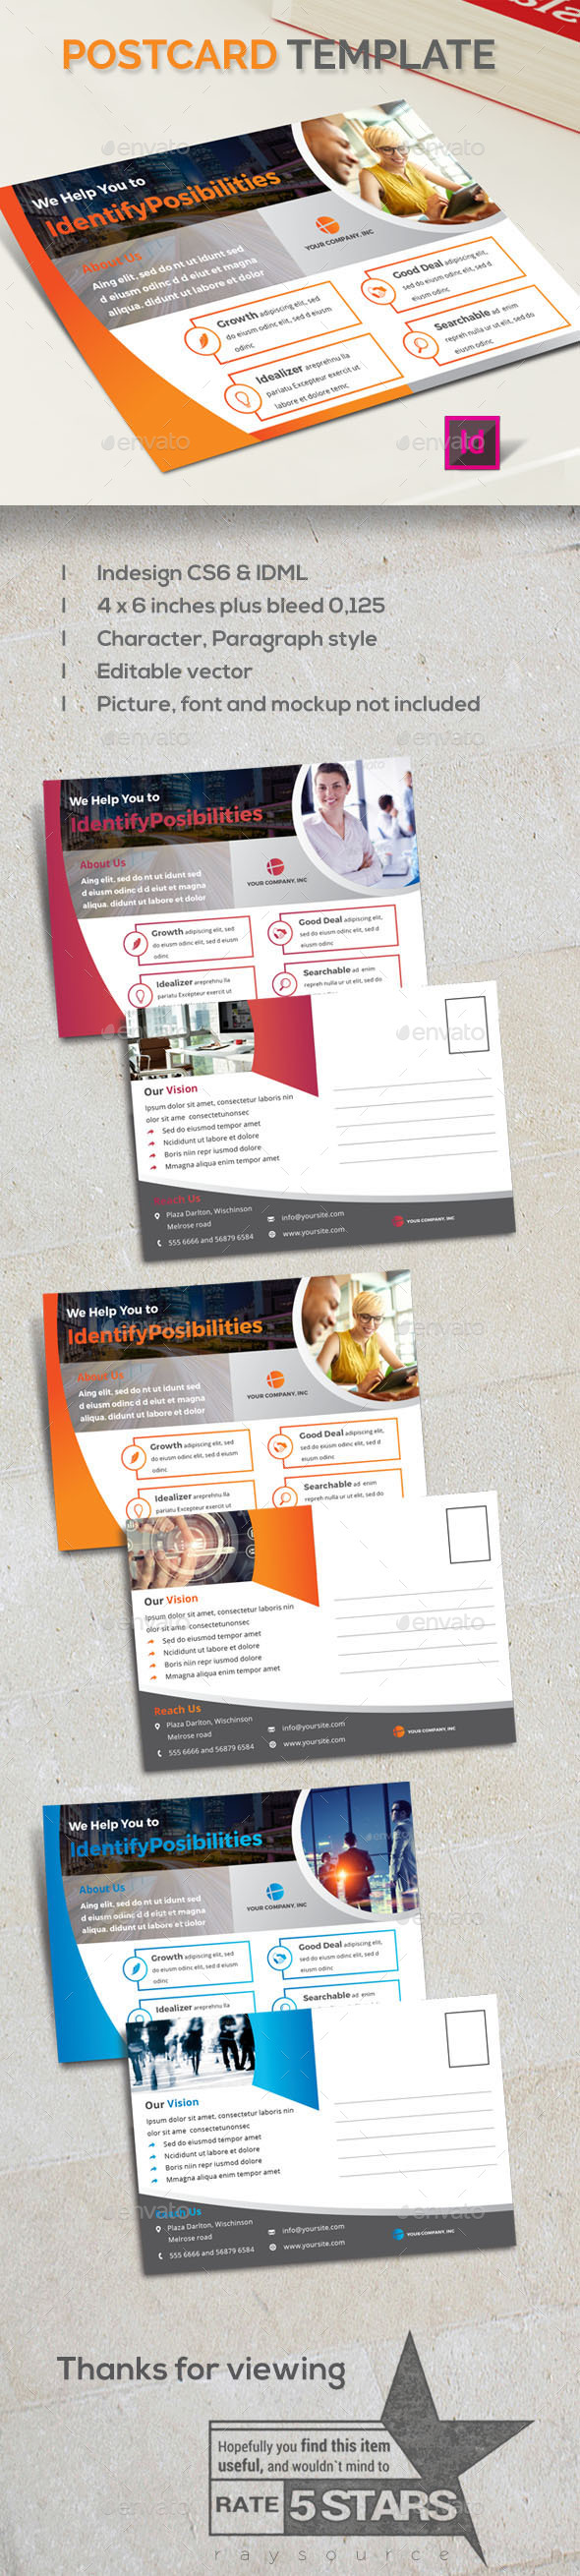 Business Post Card Template - Cards & Invites Print Templates